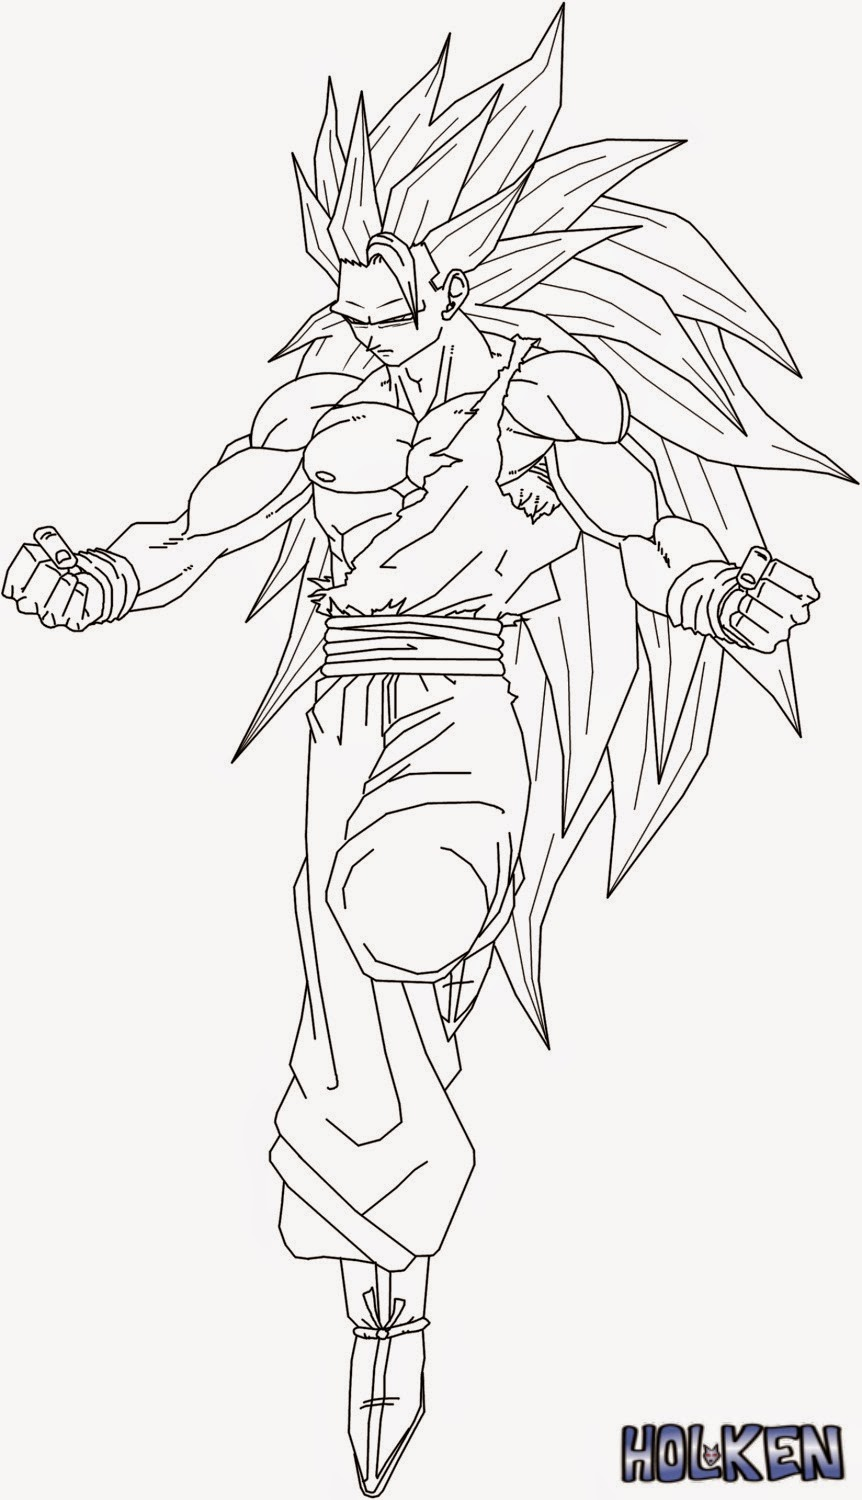 Goku sketch for colouring for Goku coloring pages